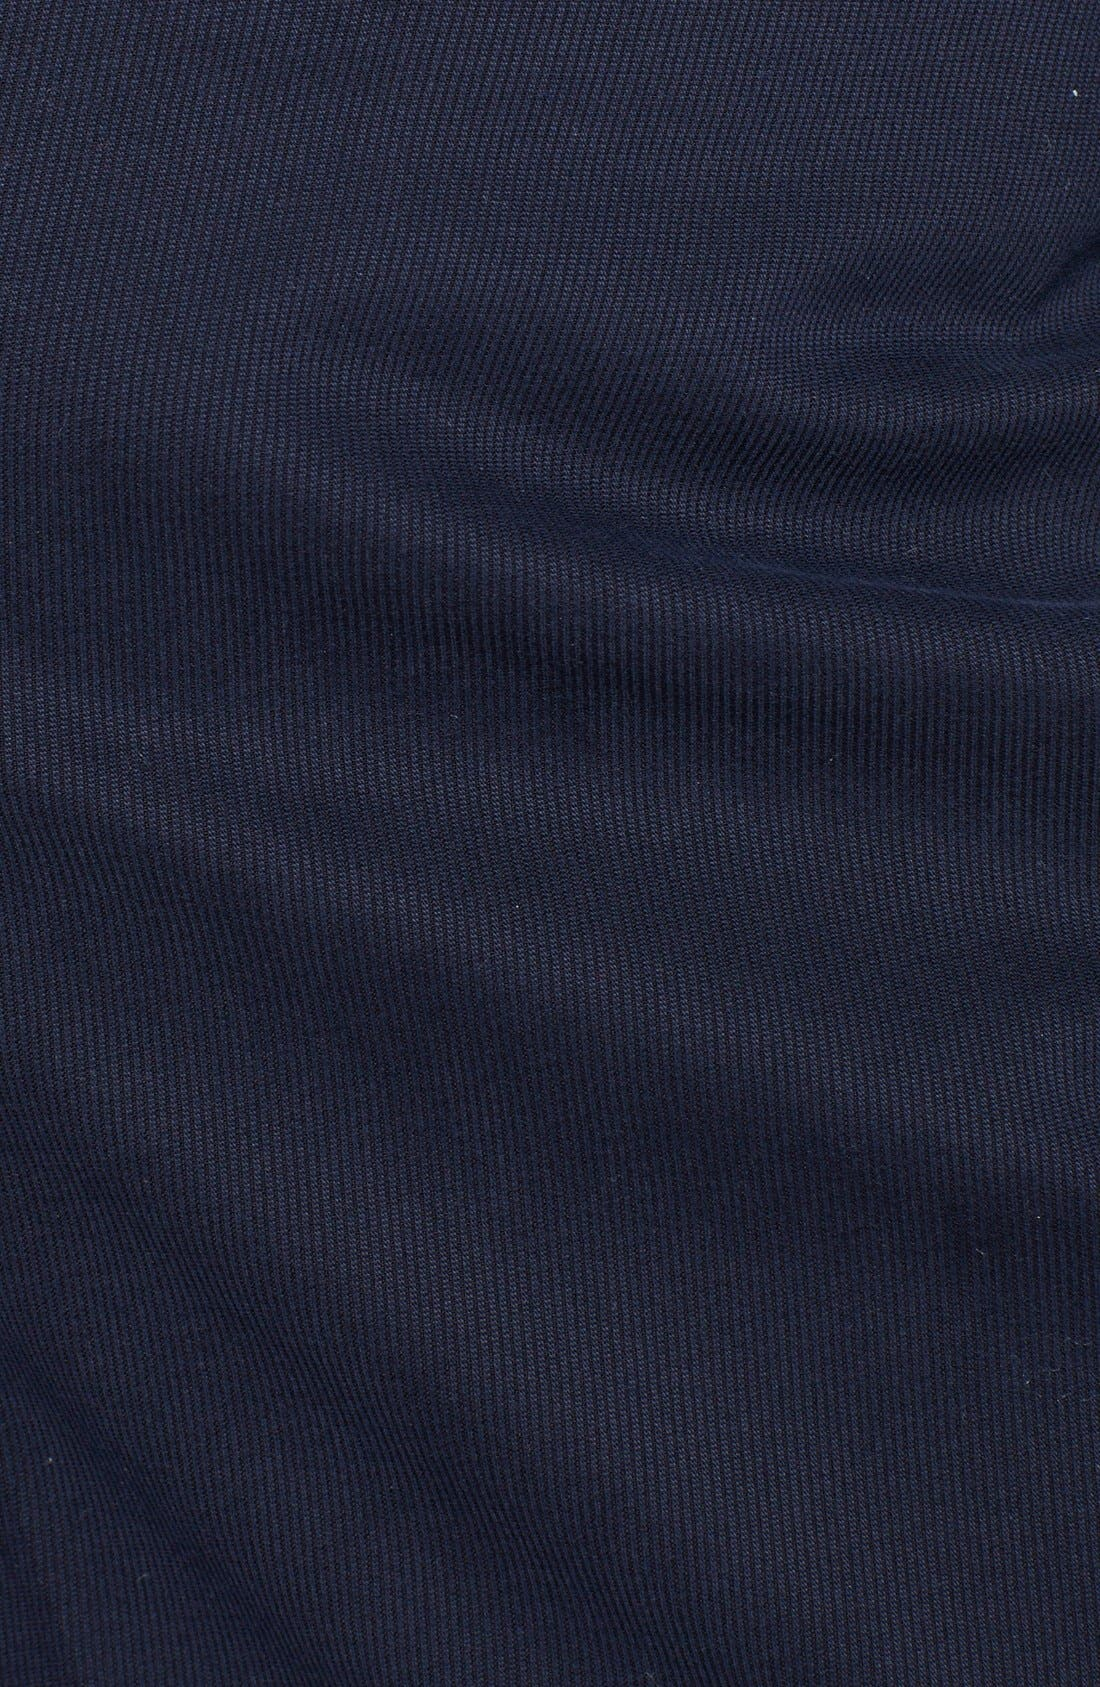 Alternate Image 2  - Canali Flat Front Stretch Cotton Trousers